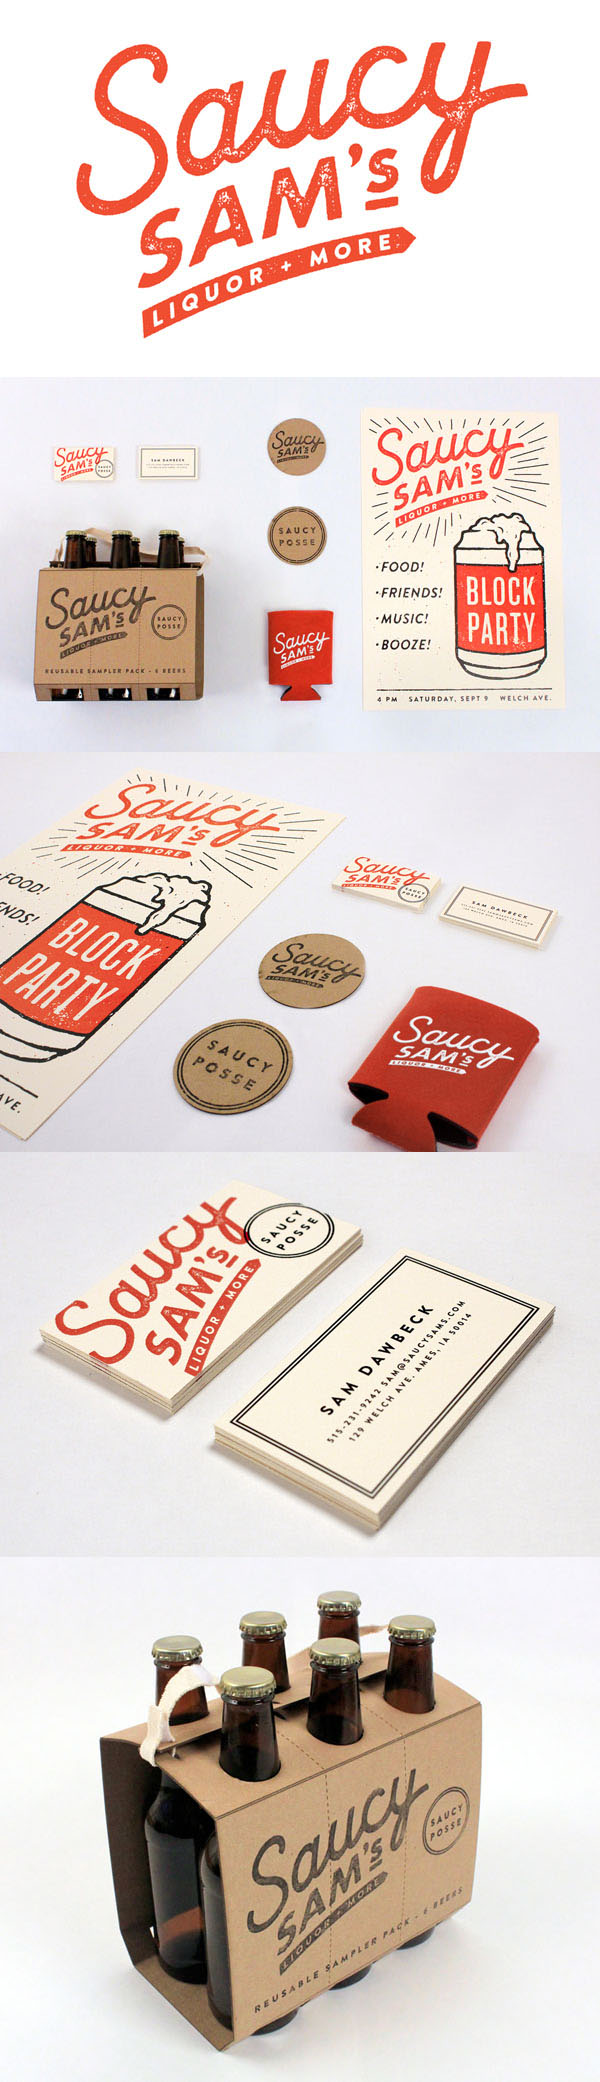 Saucy Sam's – Branding and Packaging by Alex Register